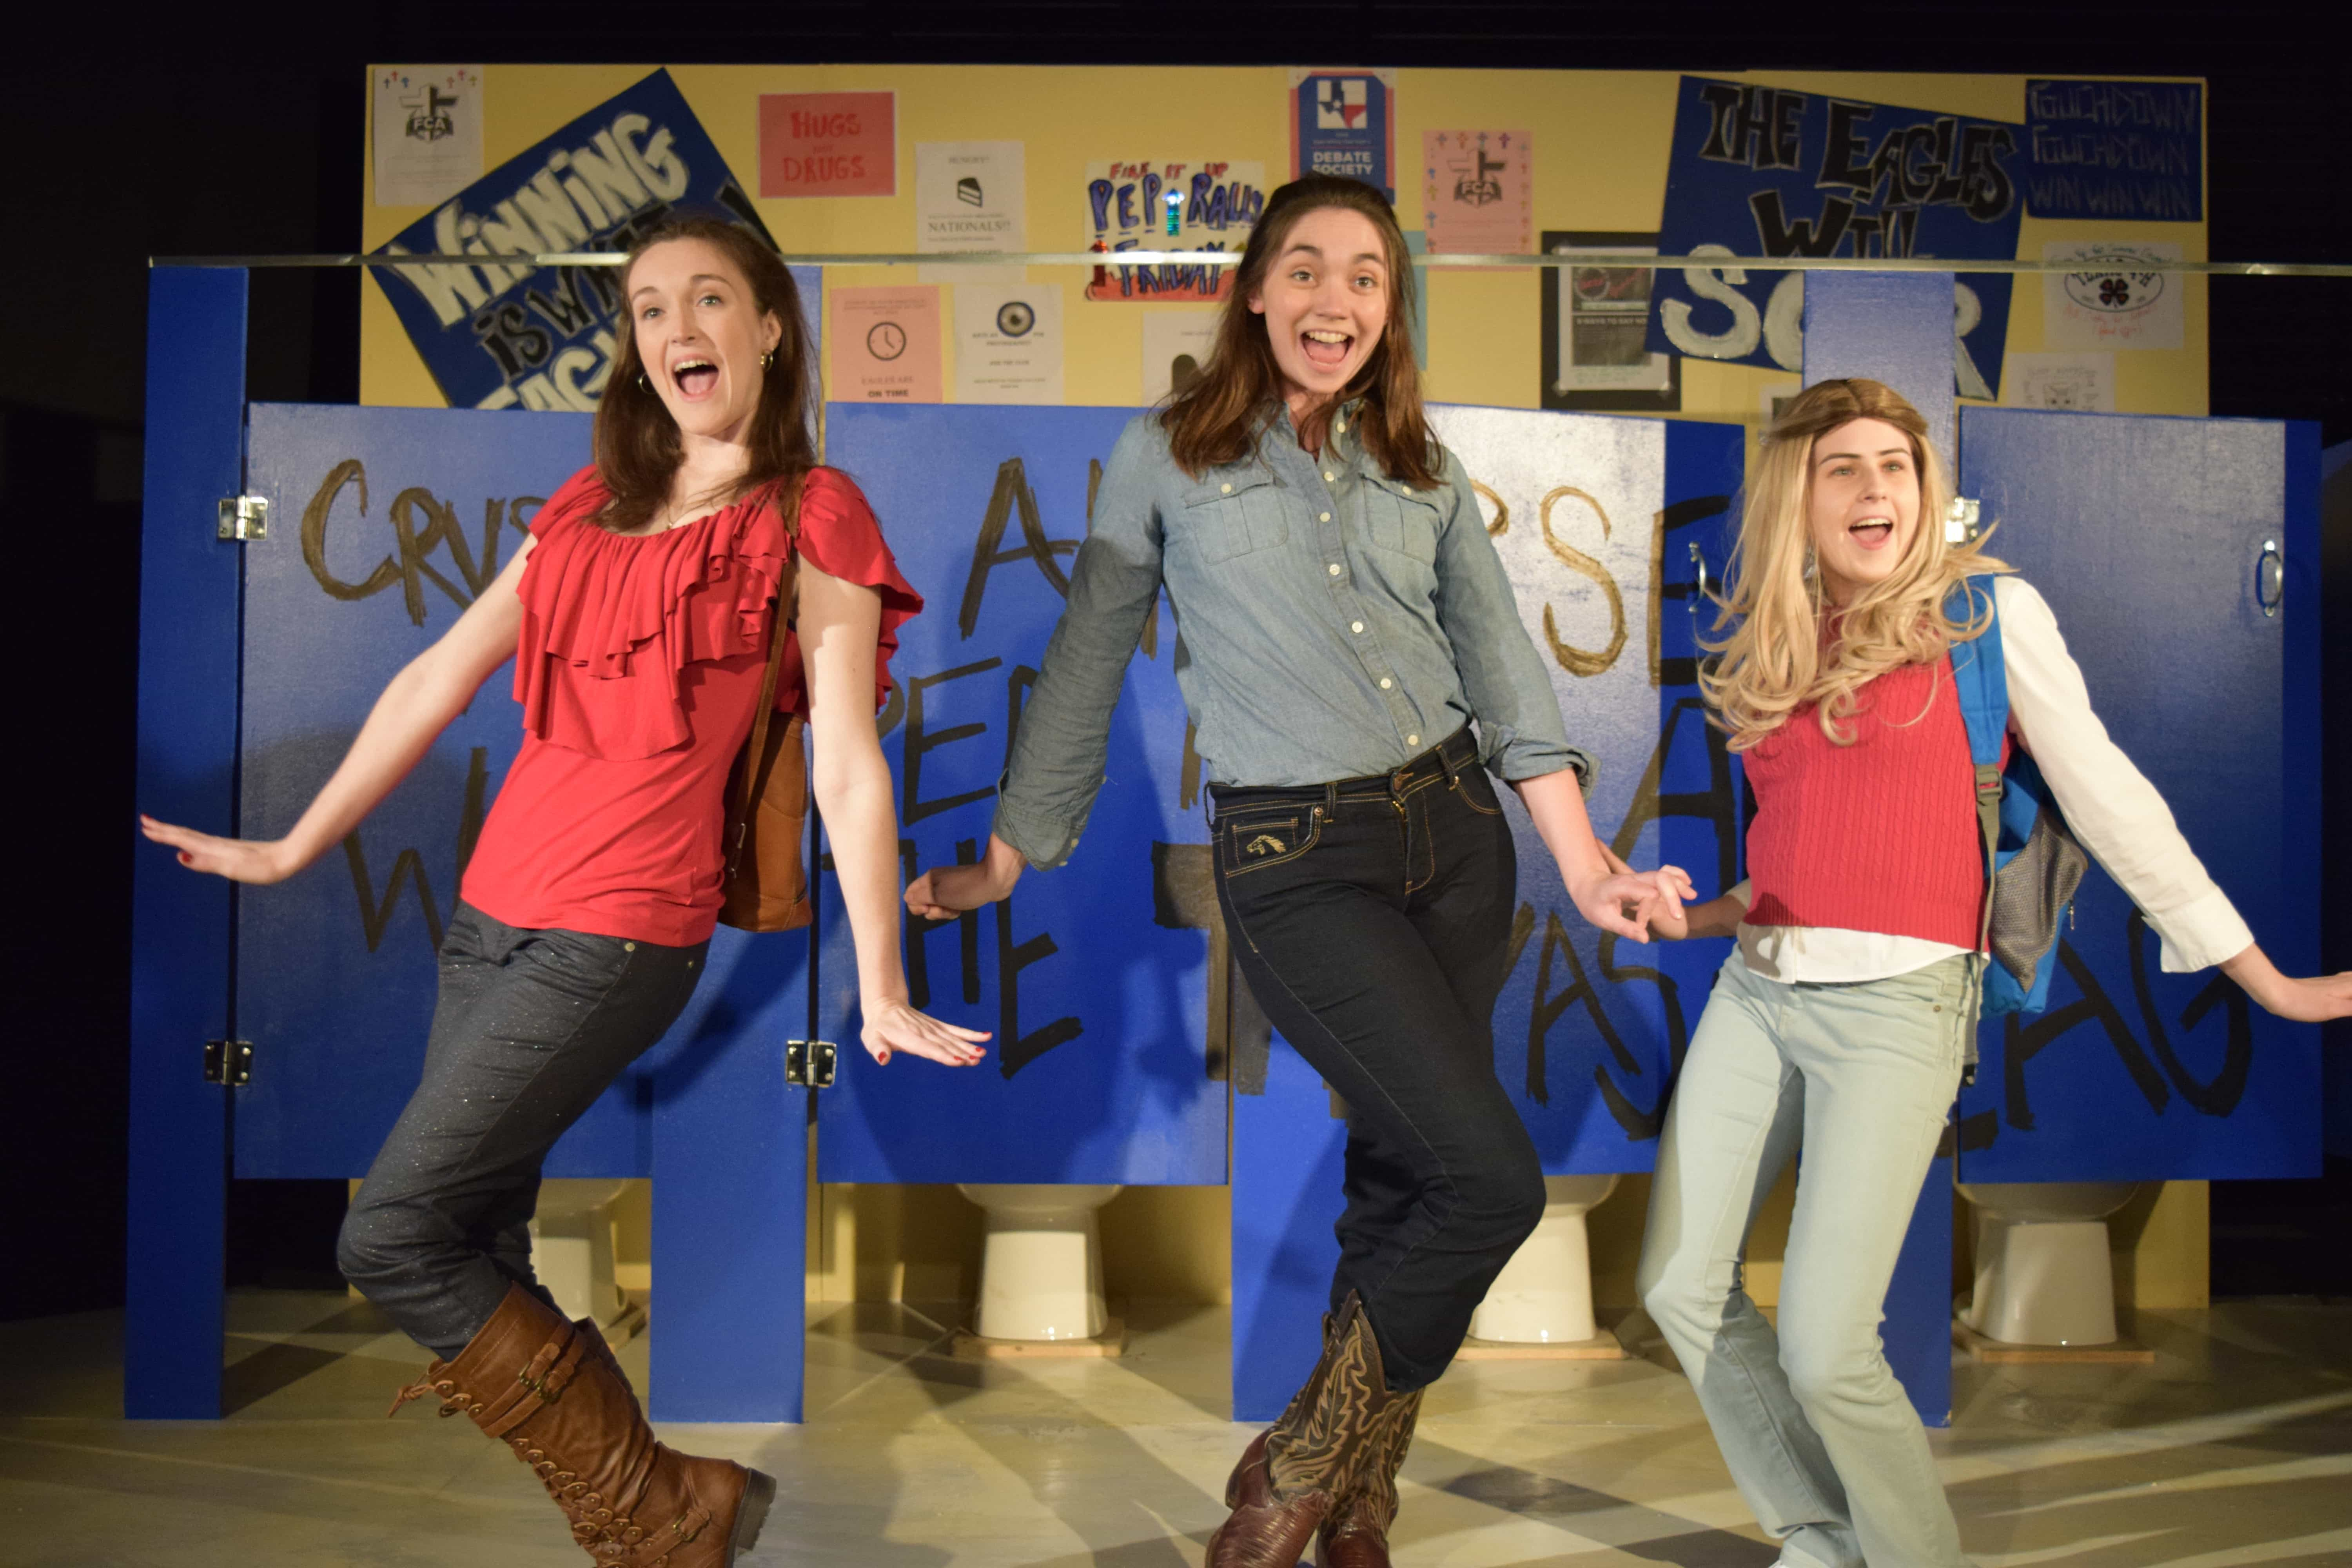 Jess (Kira Burri), Tammy (Brooke Friday) and Sammy (Claire Derriennic) are excited by some gossip on the bathroom wall. Photo by Kanea McDonald.